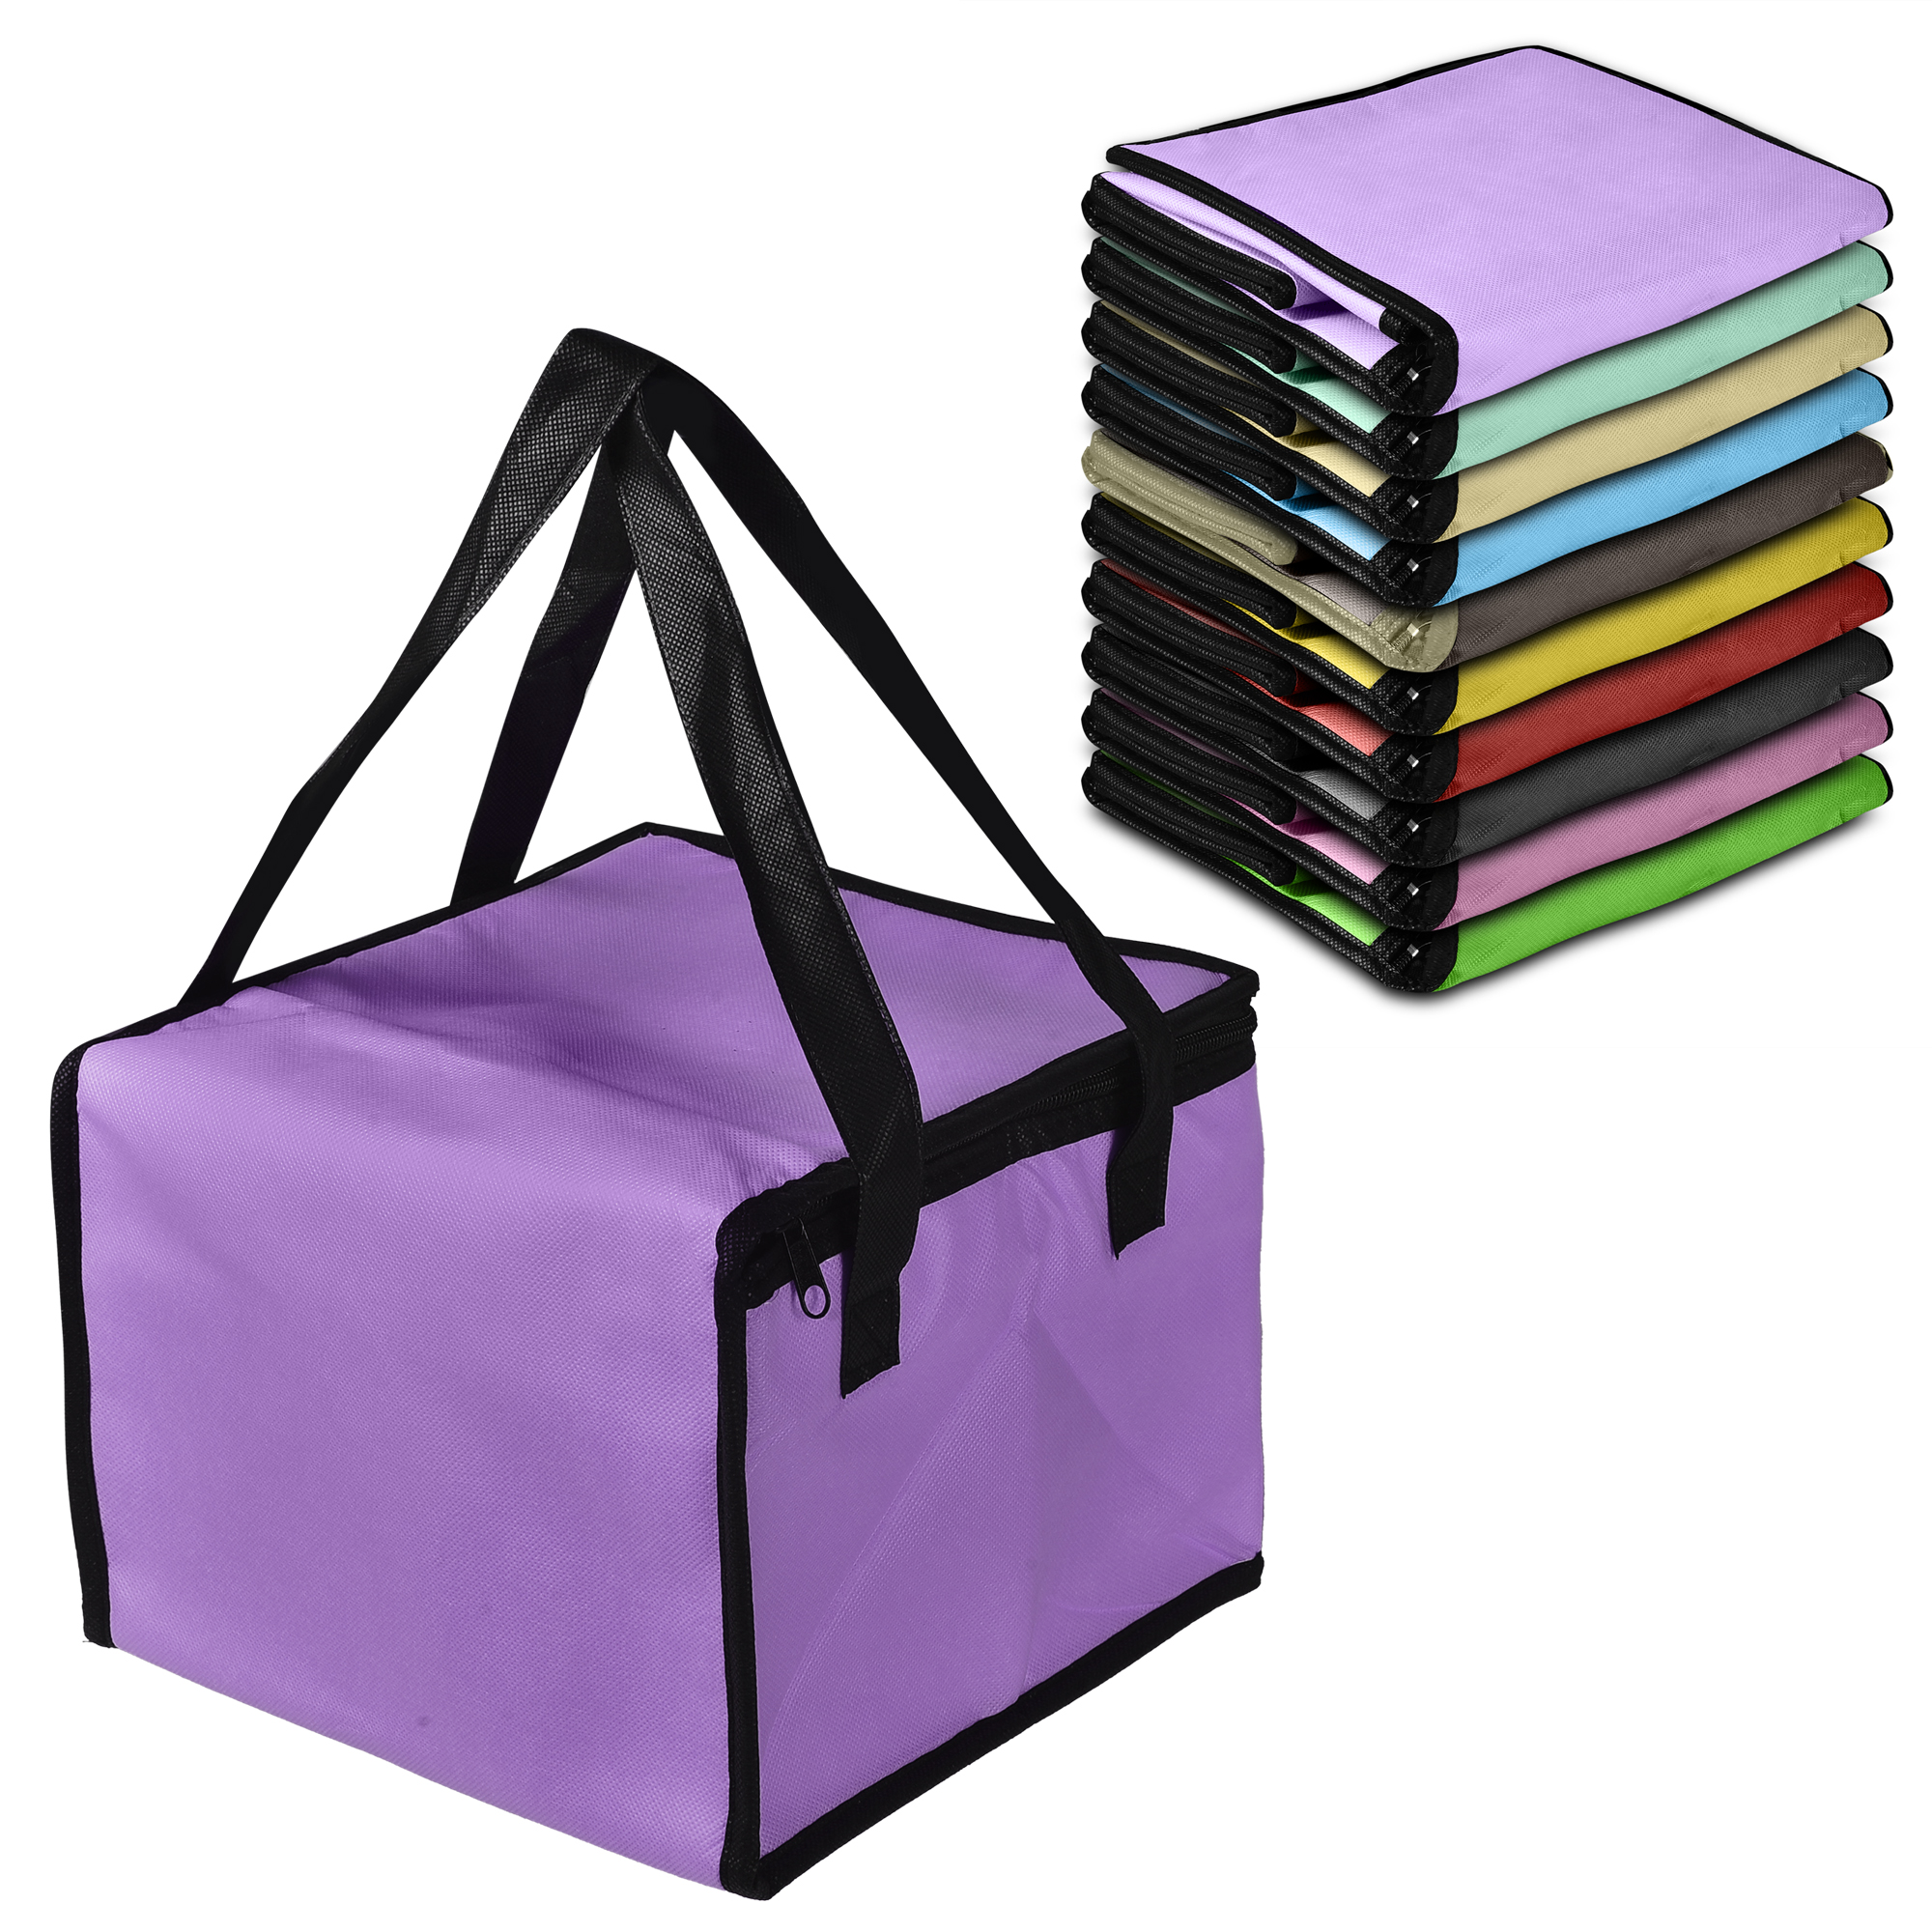 CUH Cool Bag Portable Cooler Food Insulated Can Drink Lunch Picnic Hiking 21L /12.5L